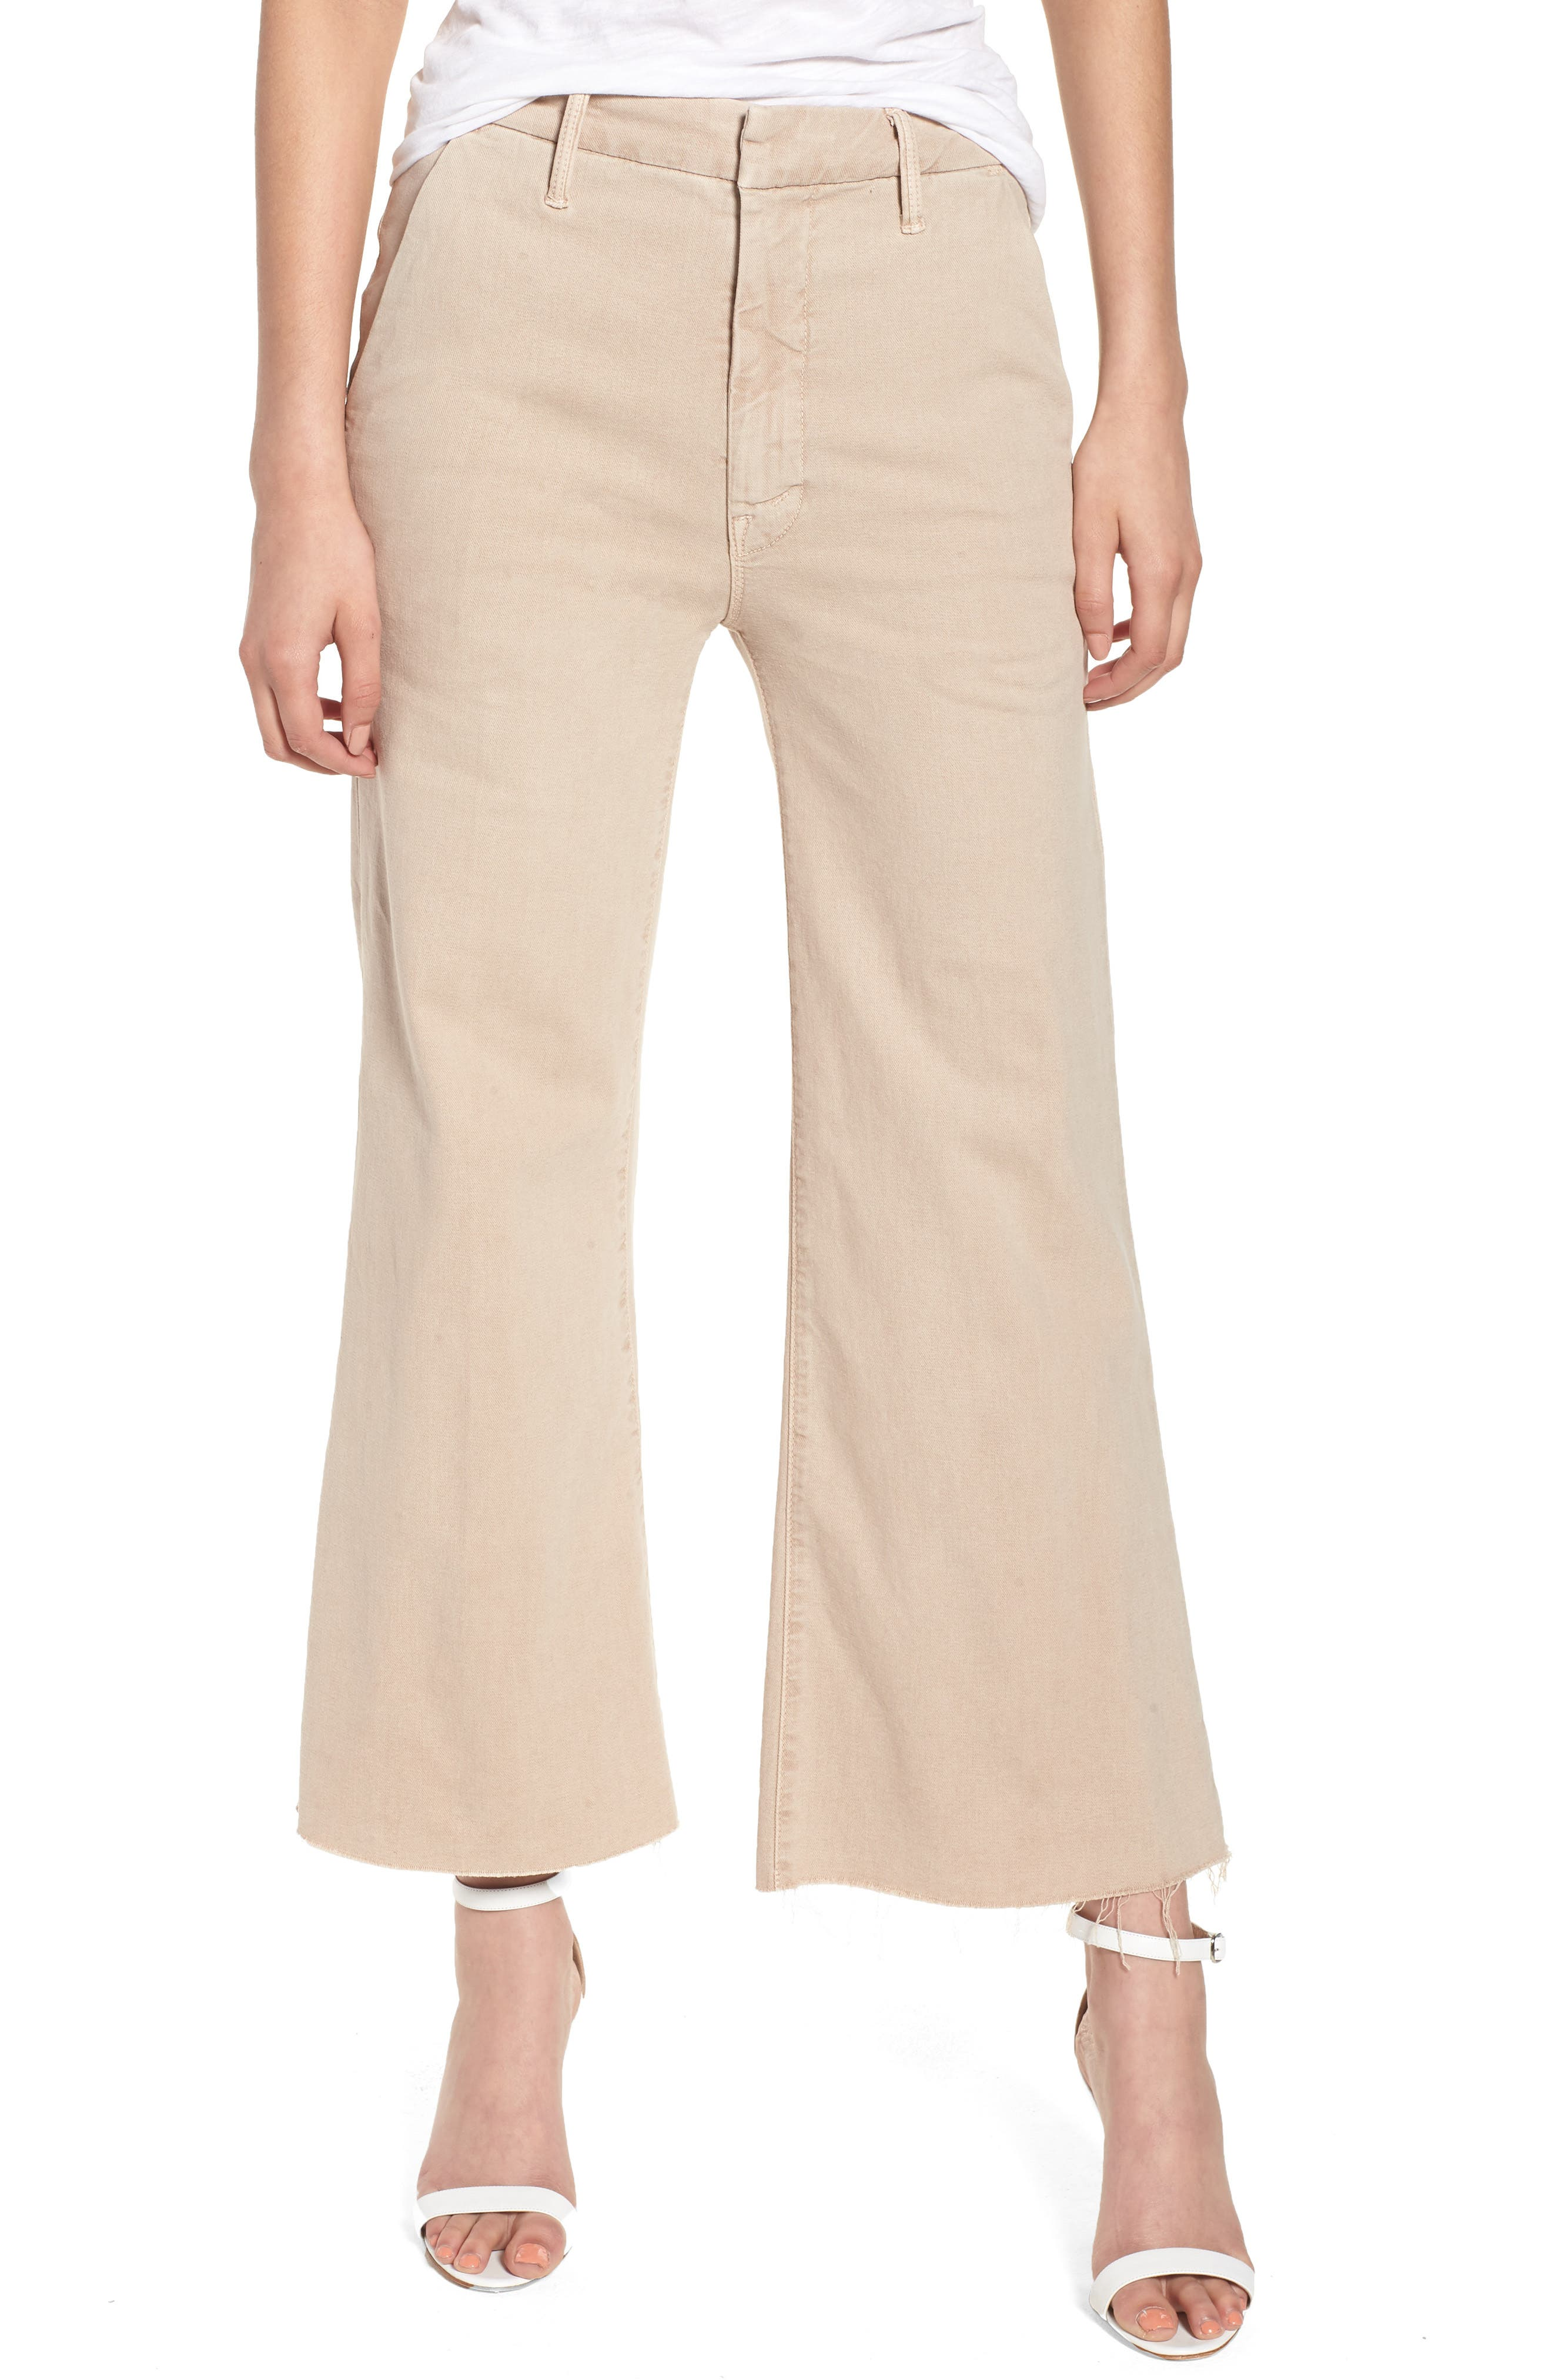 Alternate Image 1 Selected - MOTHER The Roller Fray Crop Wide Leg Jeans